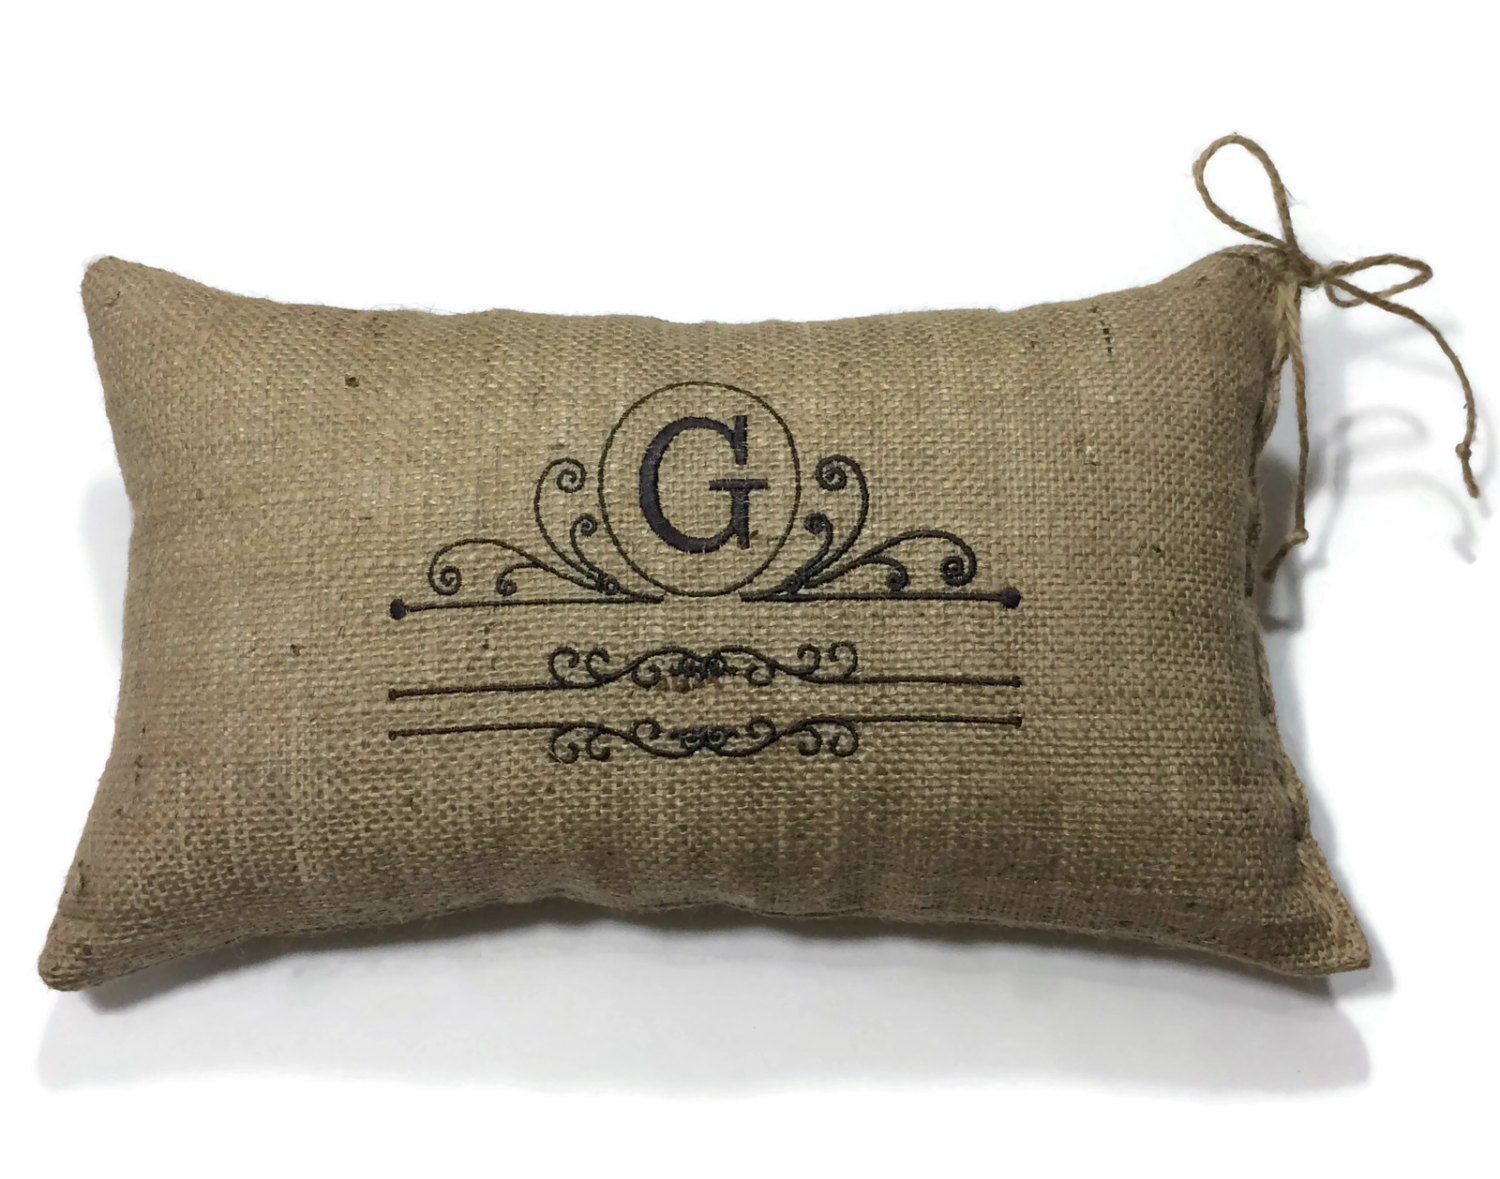 Throw Pillow Insert Sizes : Monogram Burlap Decorative Throw Pillow with insert size 9 inch x 14 inch - Custom Made ...